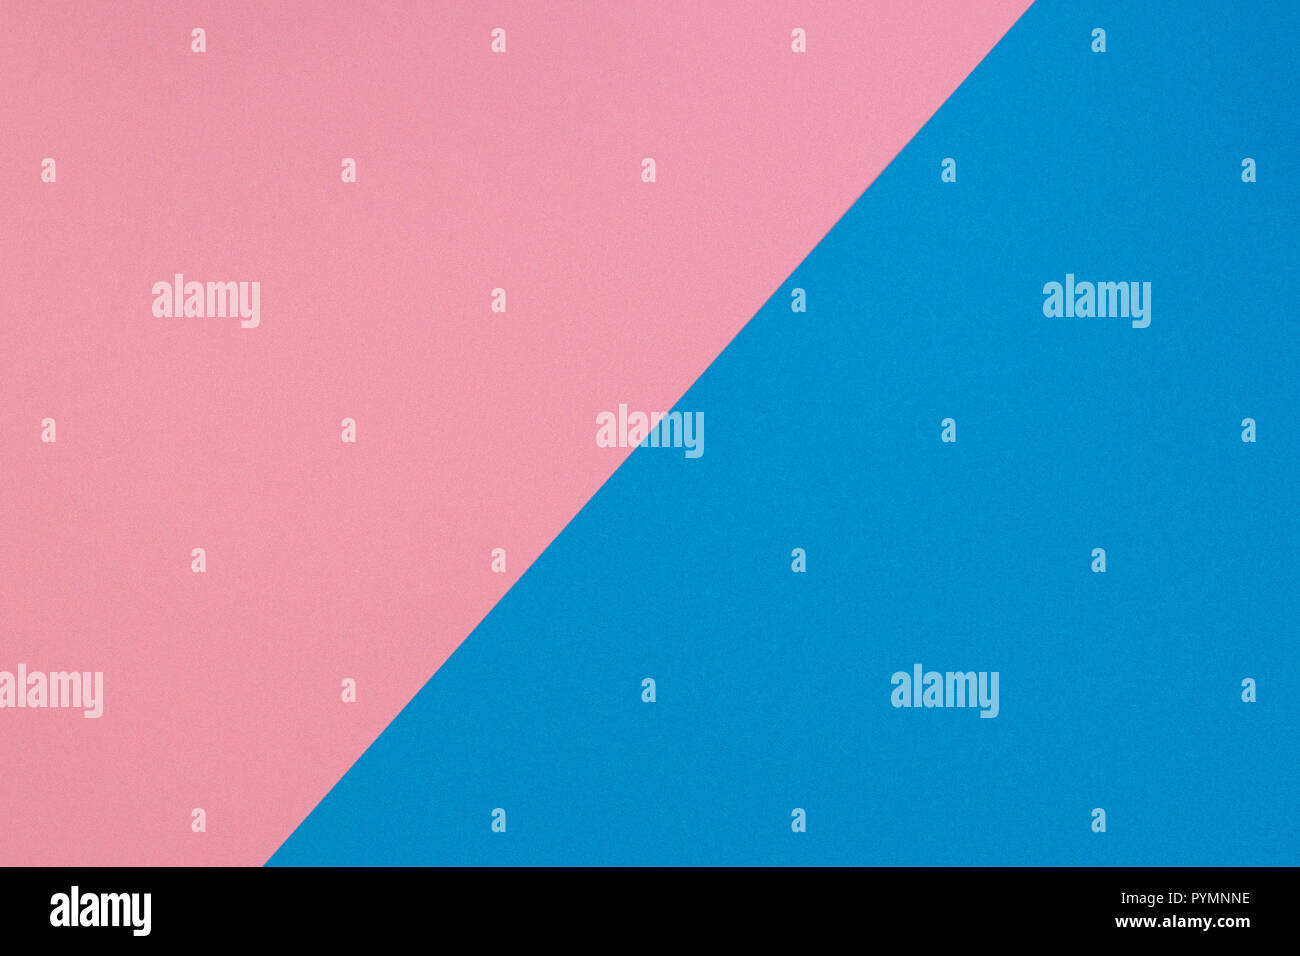 Blue and pink two tone diagonal devided color paper background - Stock Image